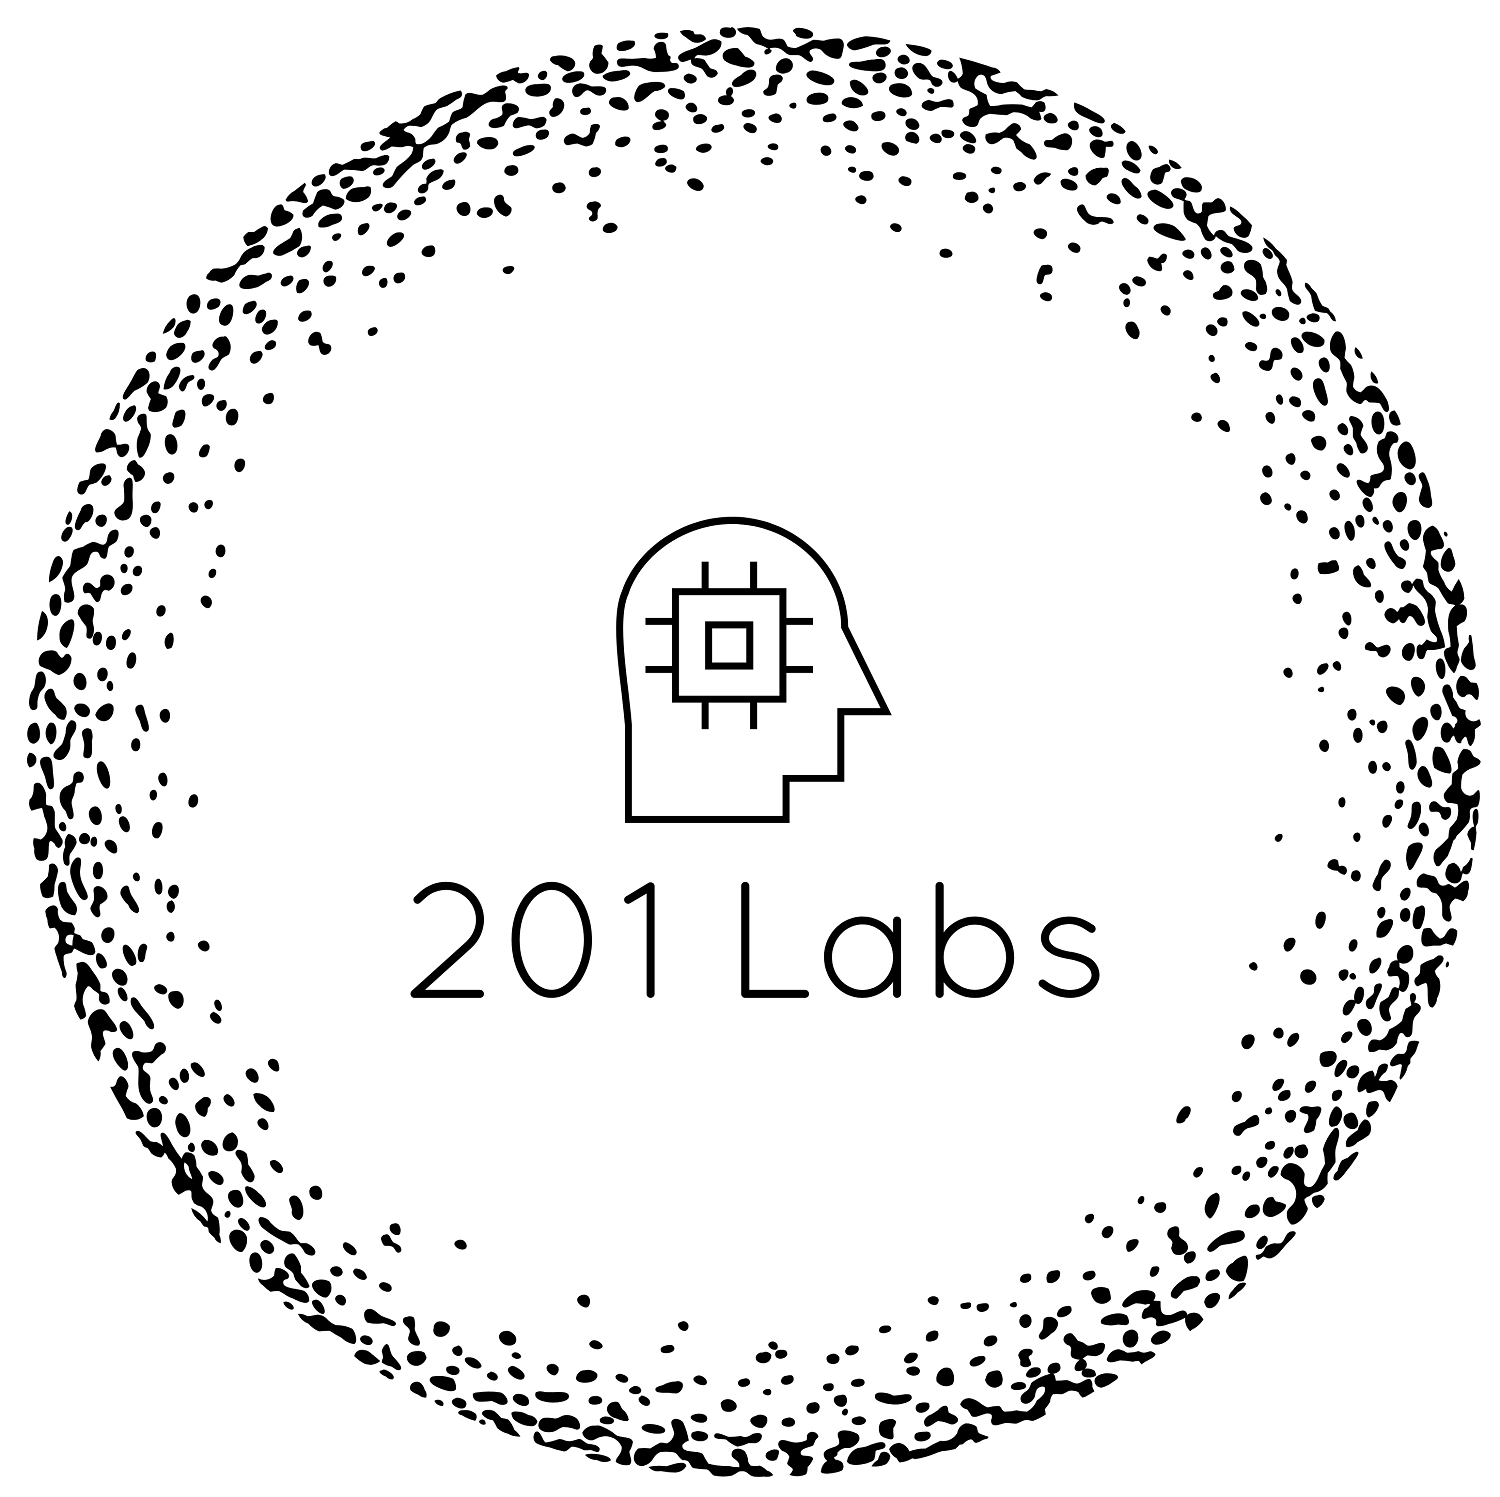 201 Labs primary image